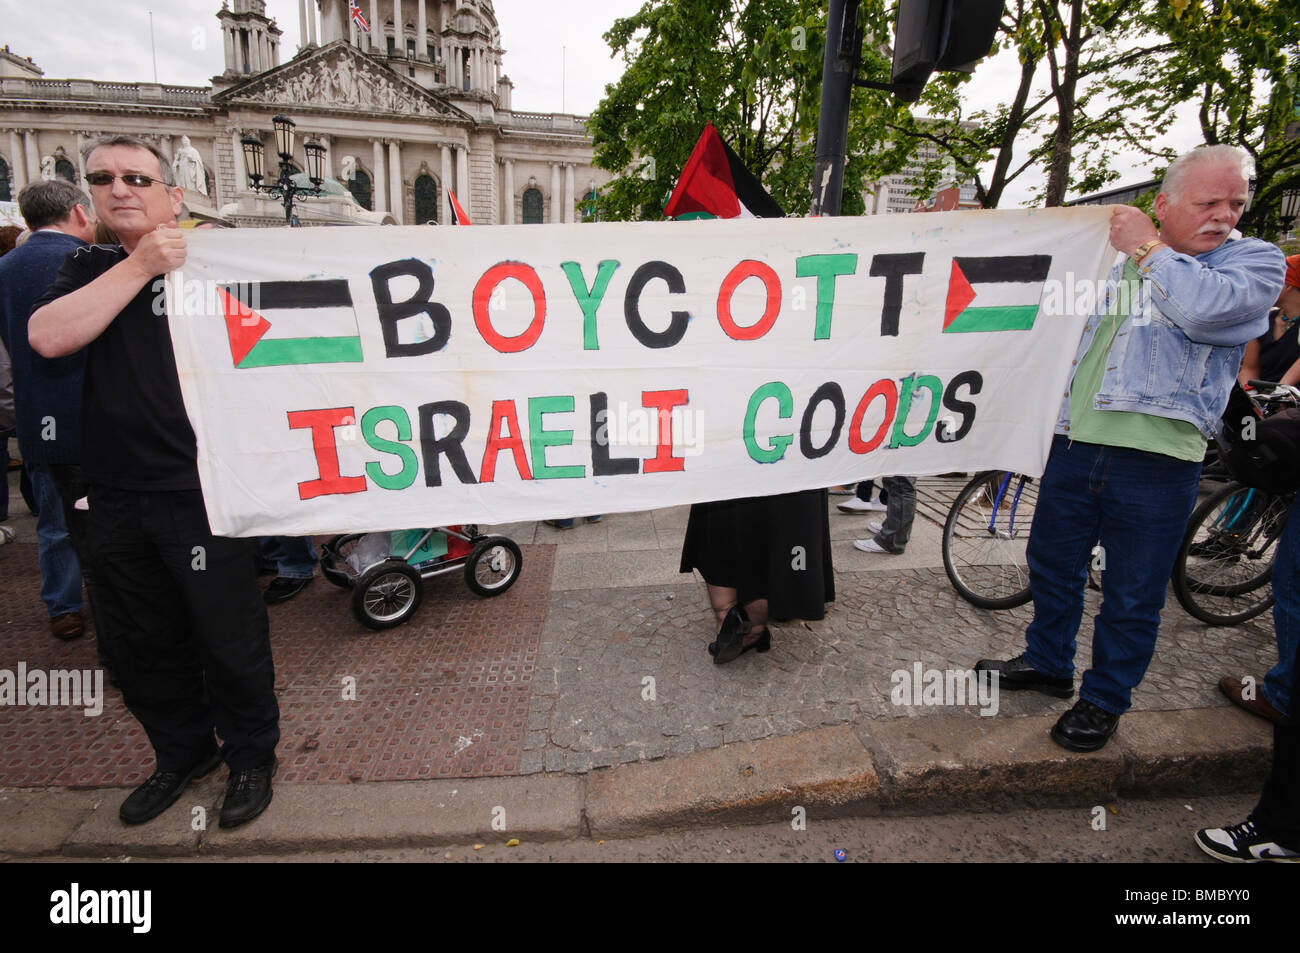 Protesters hold up a sign saying 'Boycott Israeli Goods' - Stock Image